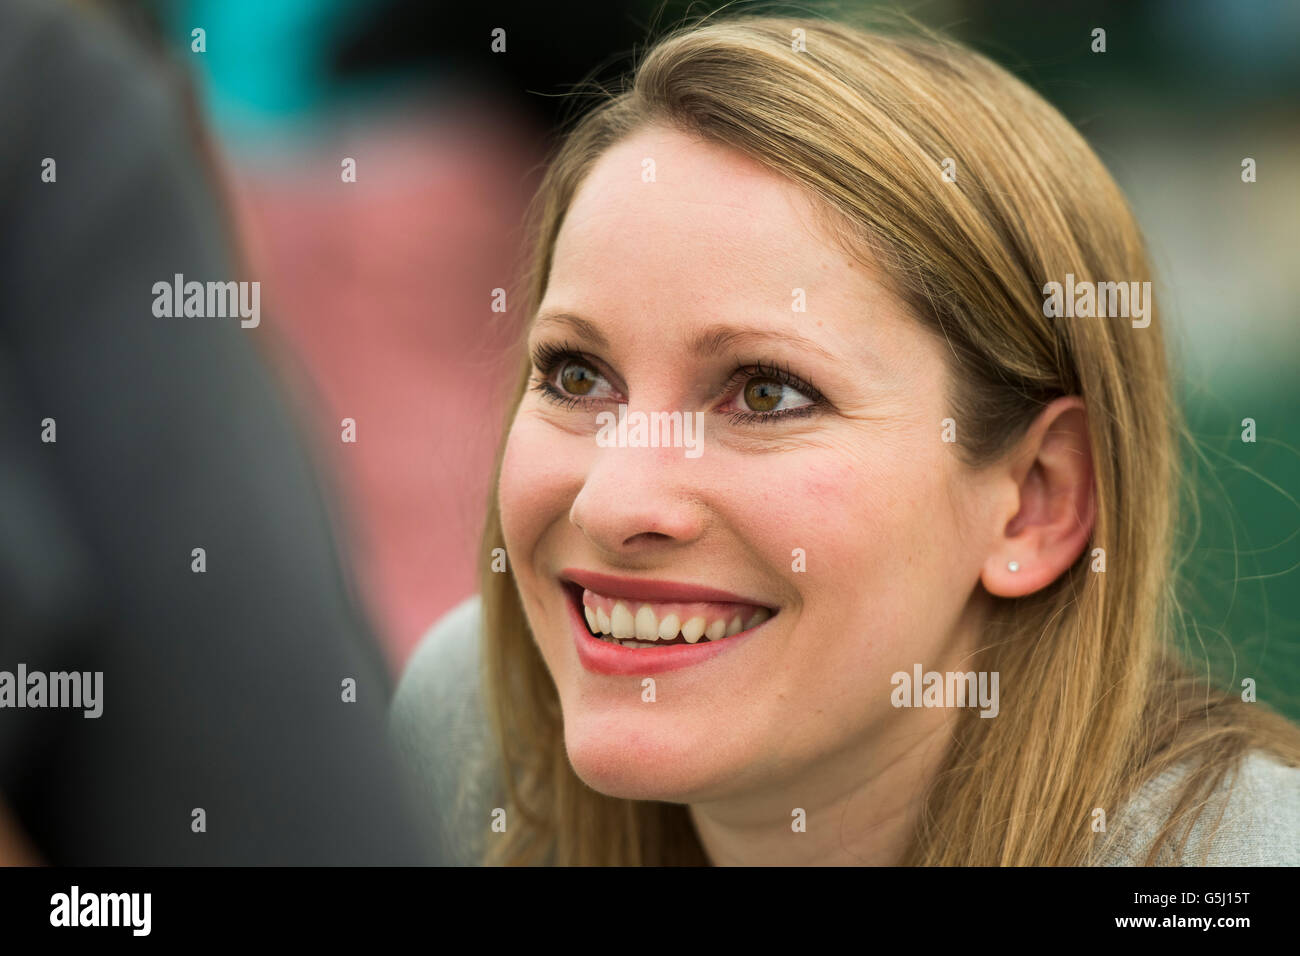 Laura Bates: British feminist writer. She founded the Everyday Sexism Project website in April 2012. Her first book, Everyday Sexism, was published in 2014  The Hay Festival of Literature and the Arts, Hay on Wye, Powys, Wales UK, June 03 2016 Stock Photo